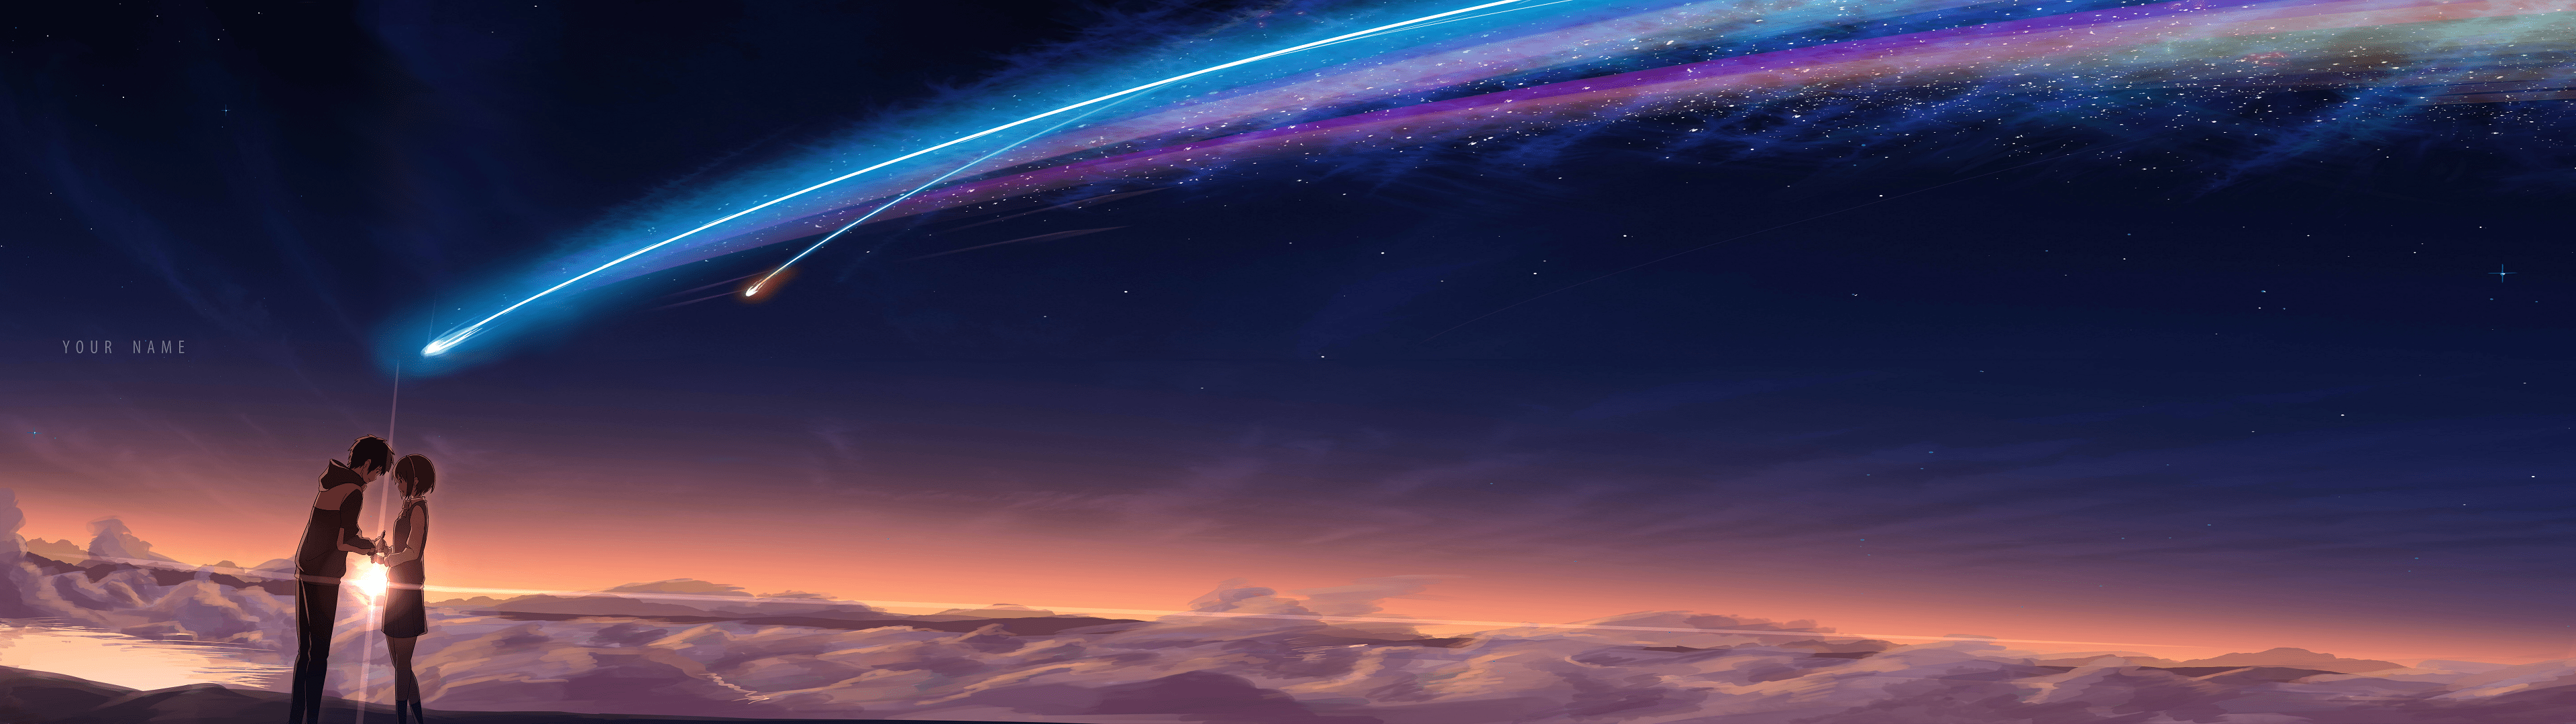 Kimi No Na Wa Your Name My Hastily Done Dual Monitor Edit Of A Widely Available Wallpaper Hd Wa Dual Monitor Wallpaper Dual Screen Wallpaper Wallpaper Space